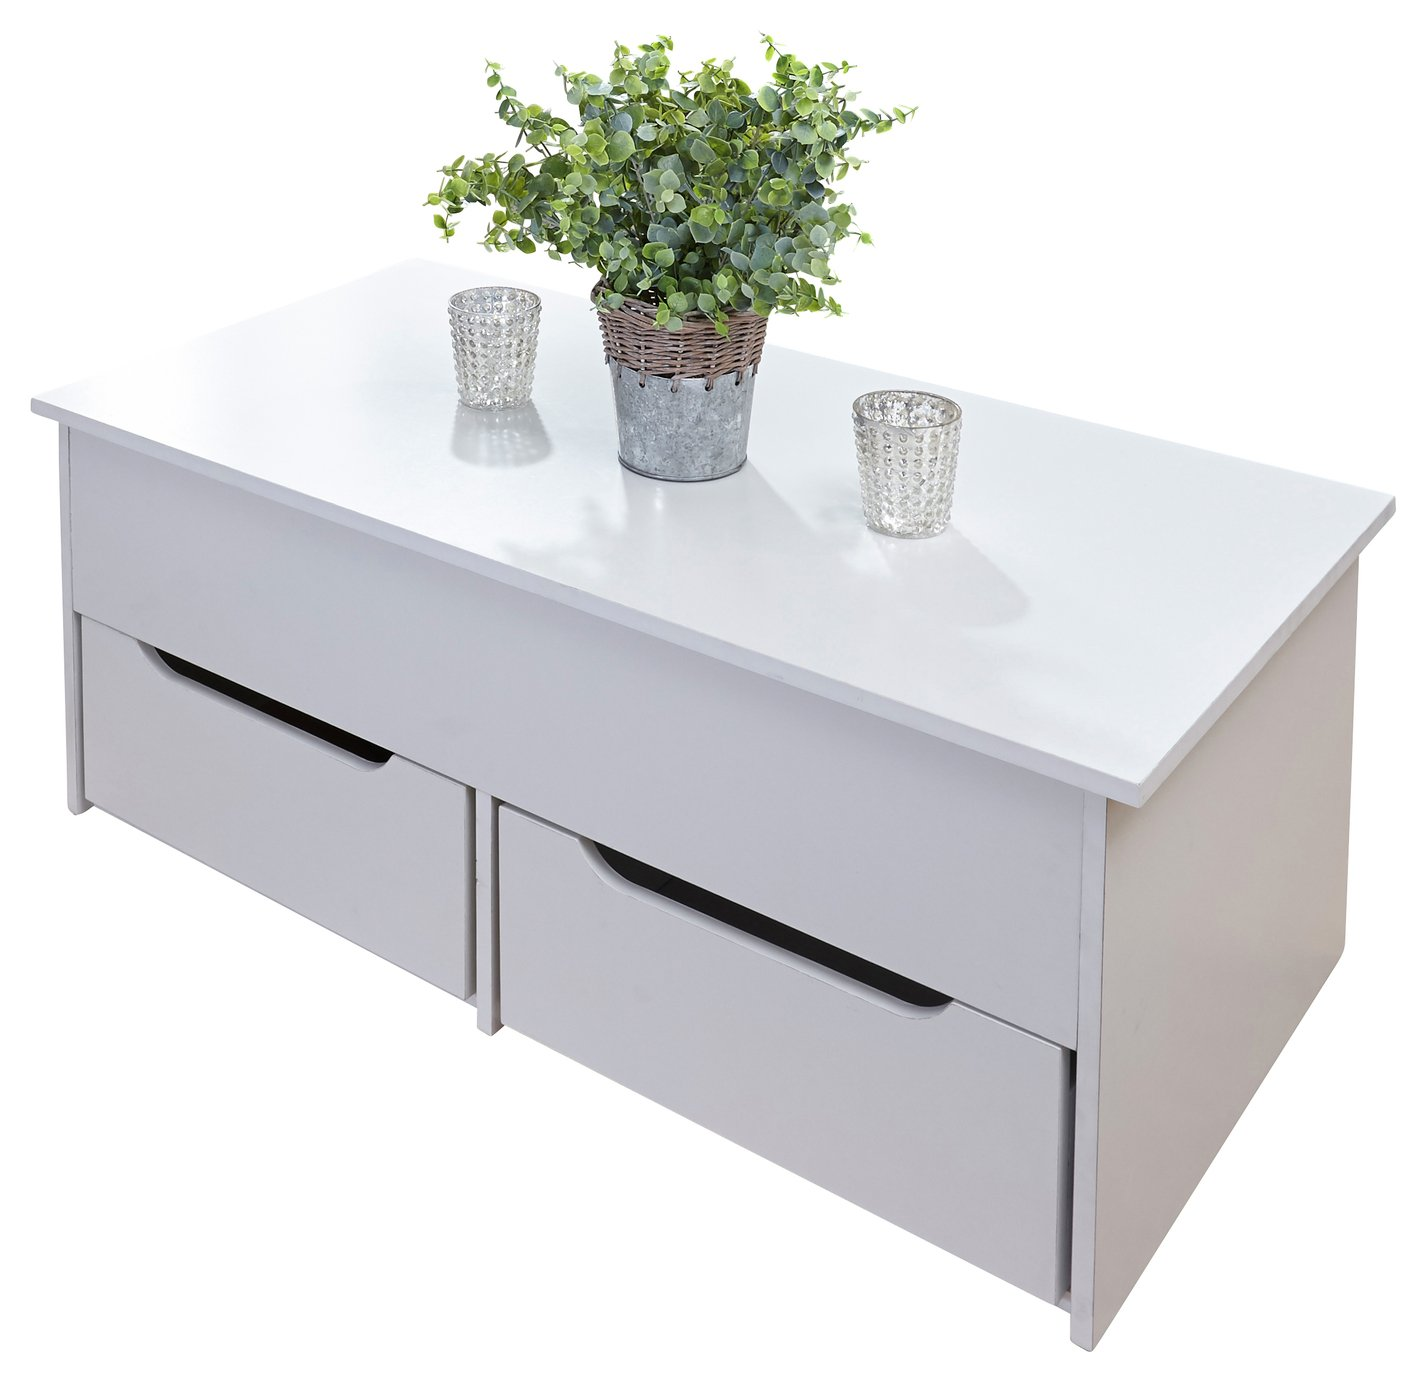 Ultimate Storage 2 Drawer Lifting Coffee Table – White £125.00 @ Argos